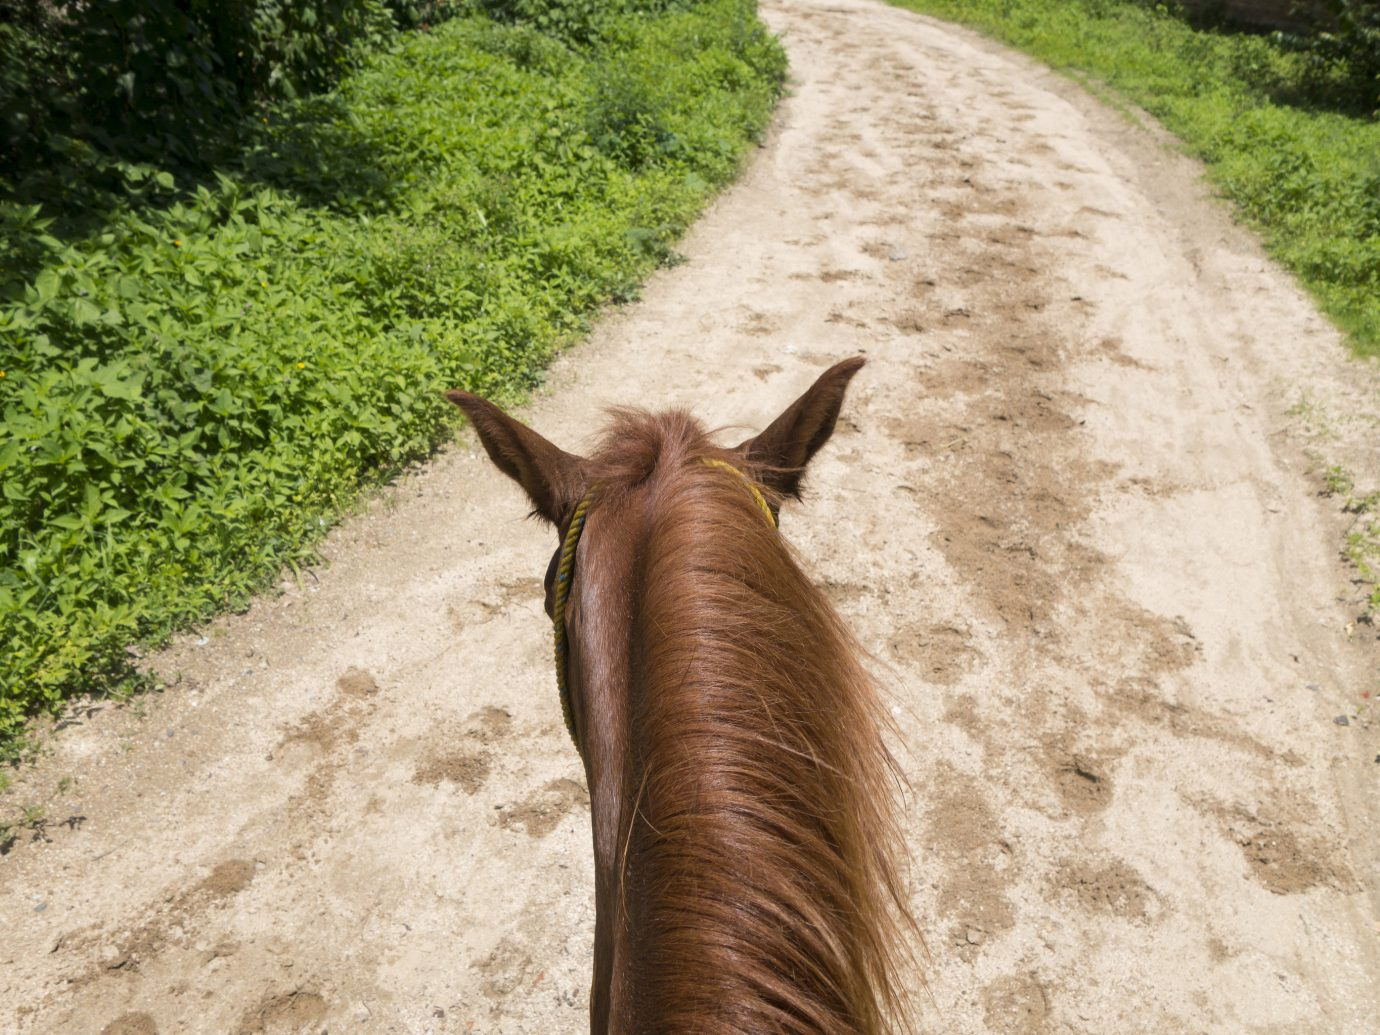 Offbeat outdoor ground tree grass mammal fauna path animal dirt soil Wildlife horse like mammal trail horse